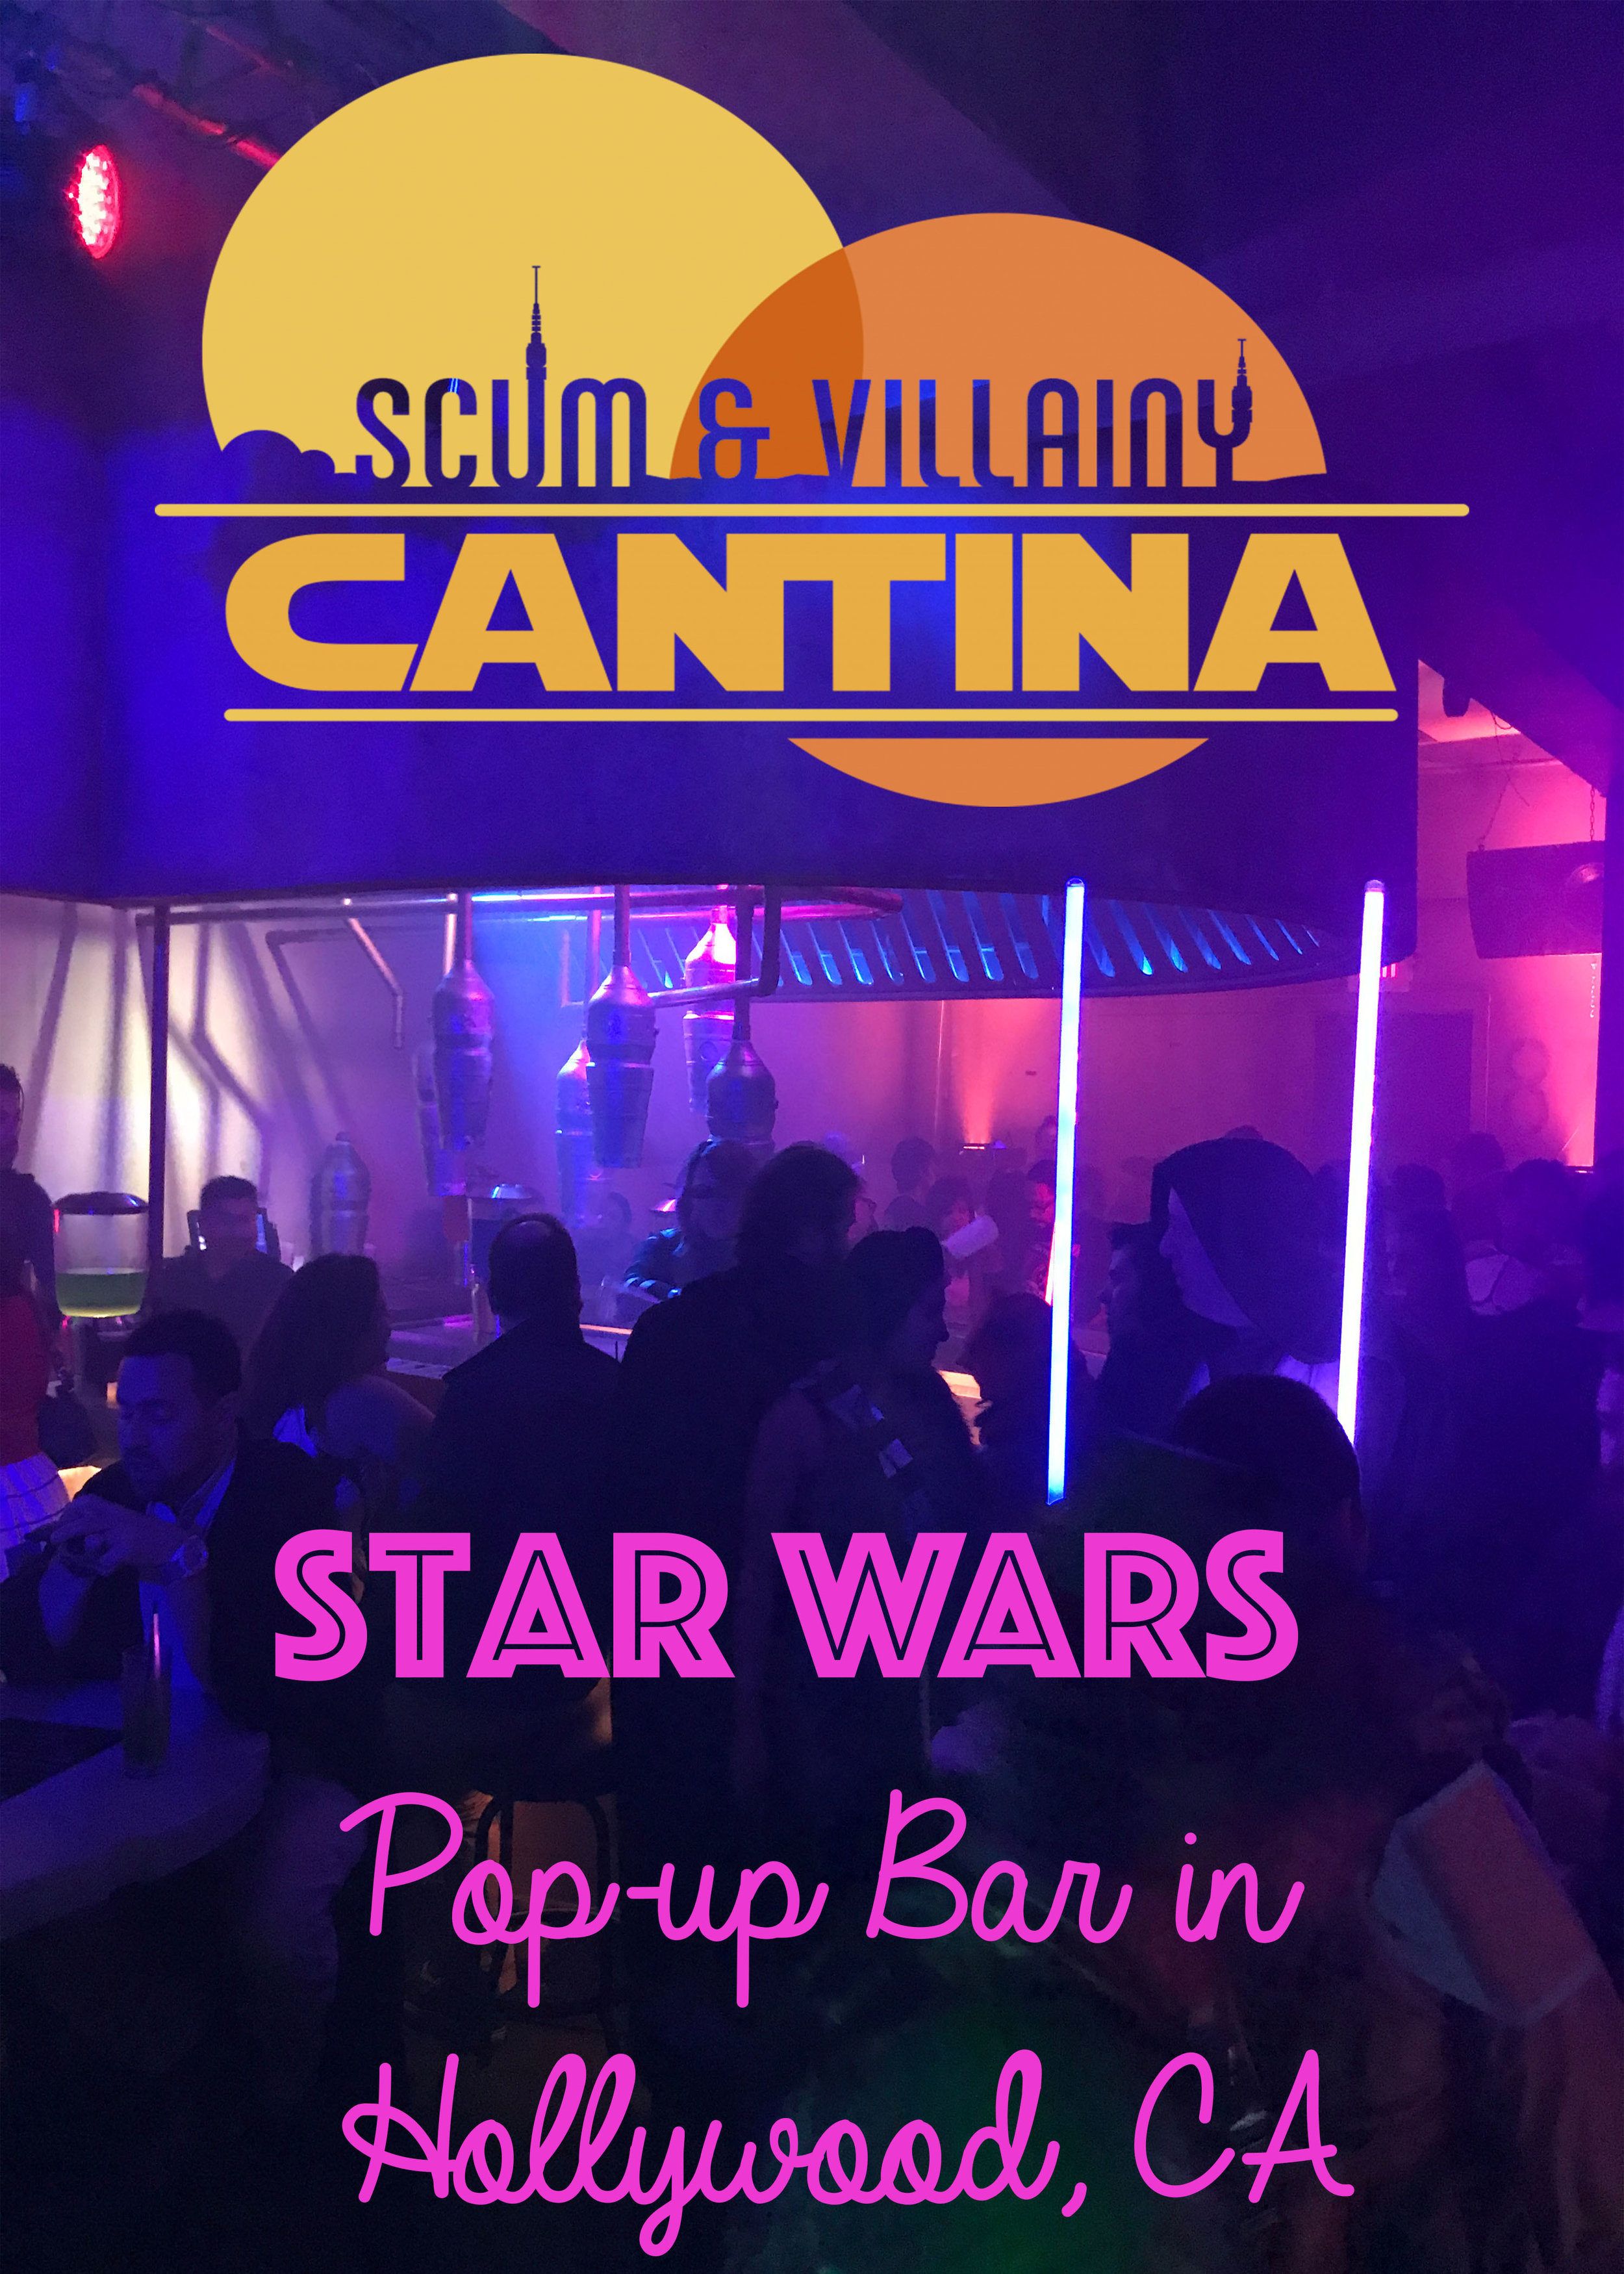 Scum and Villainy Star Wars Bar in Hollywood.jpg